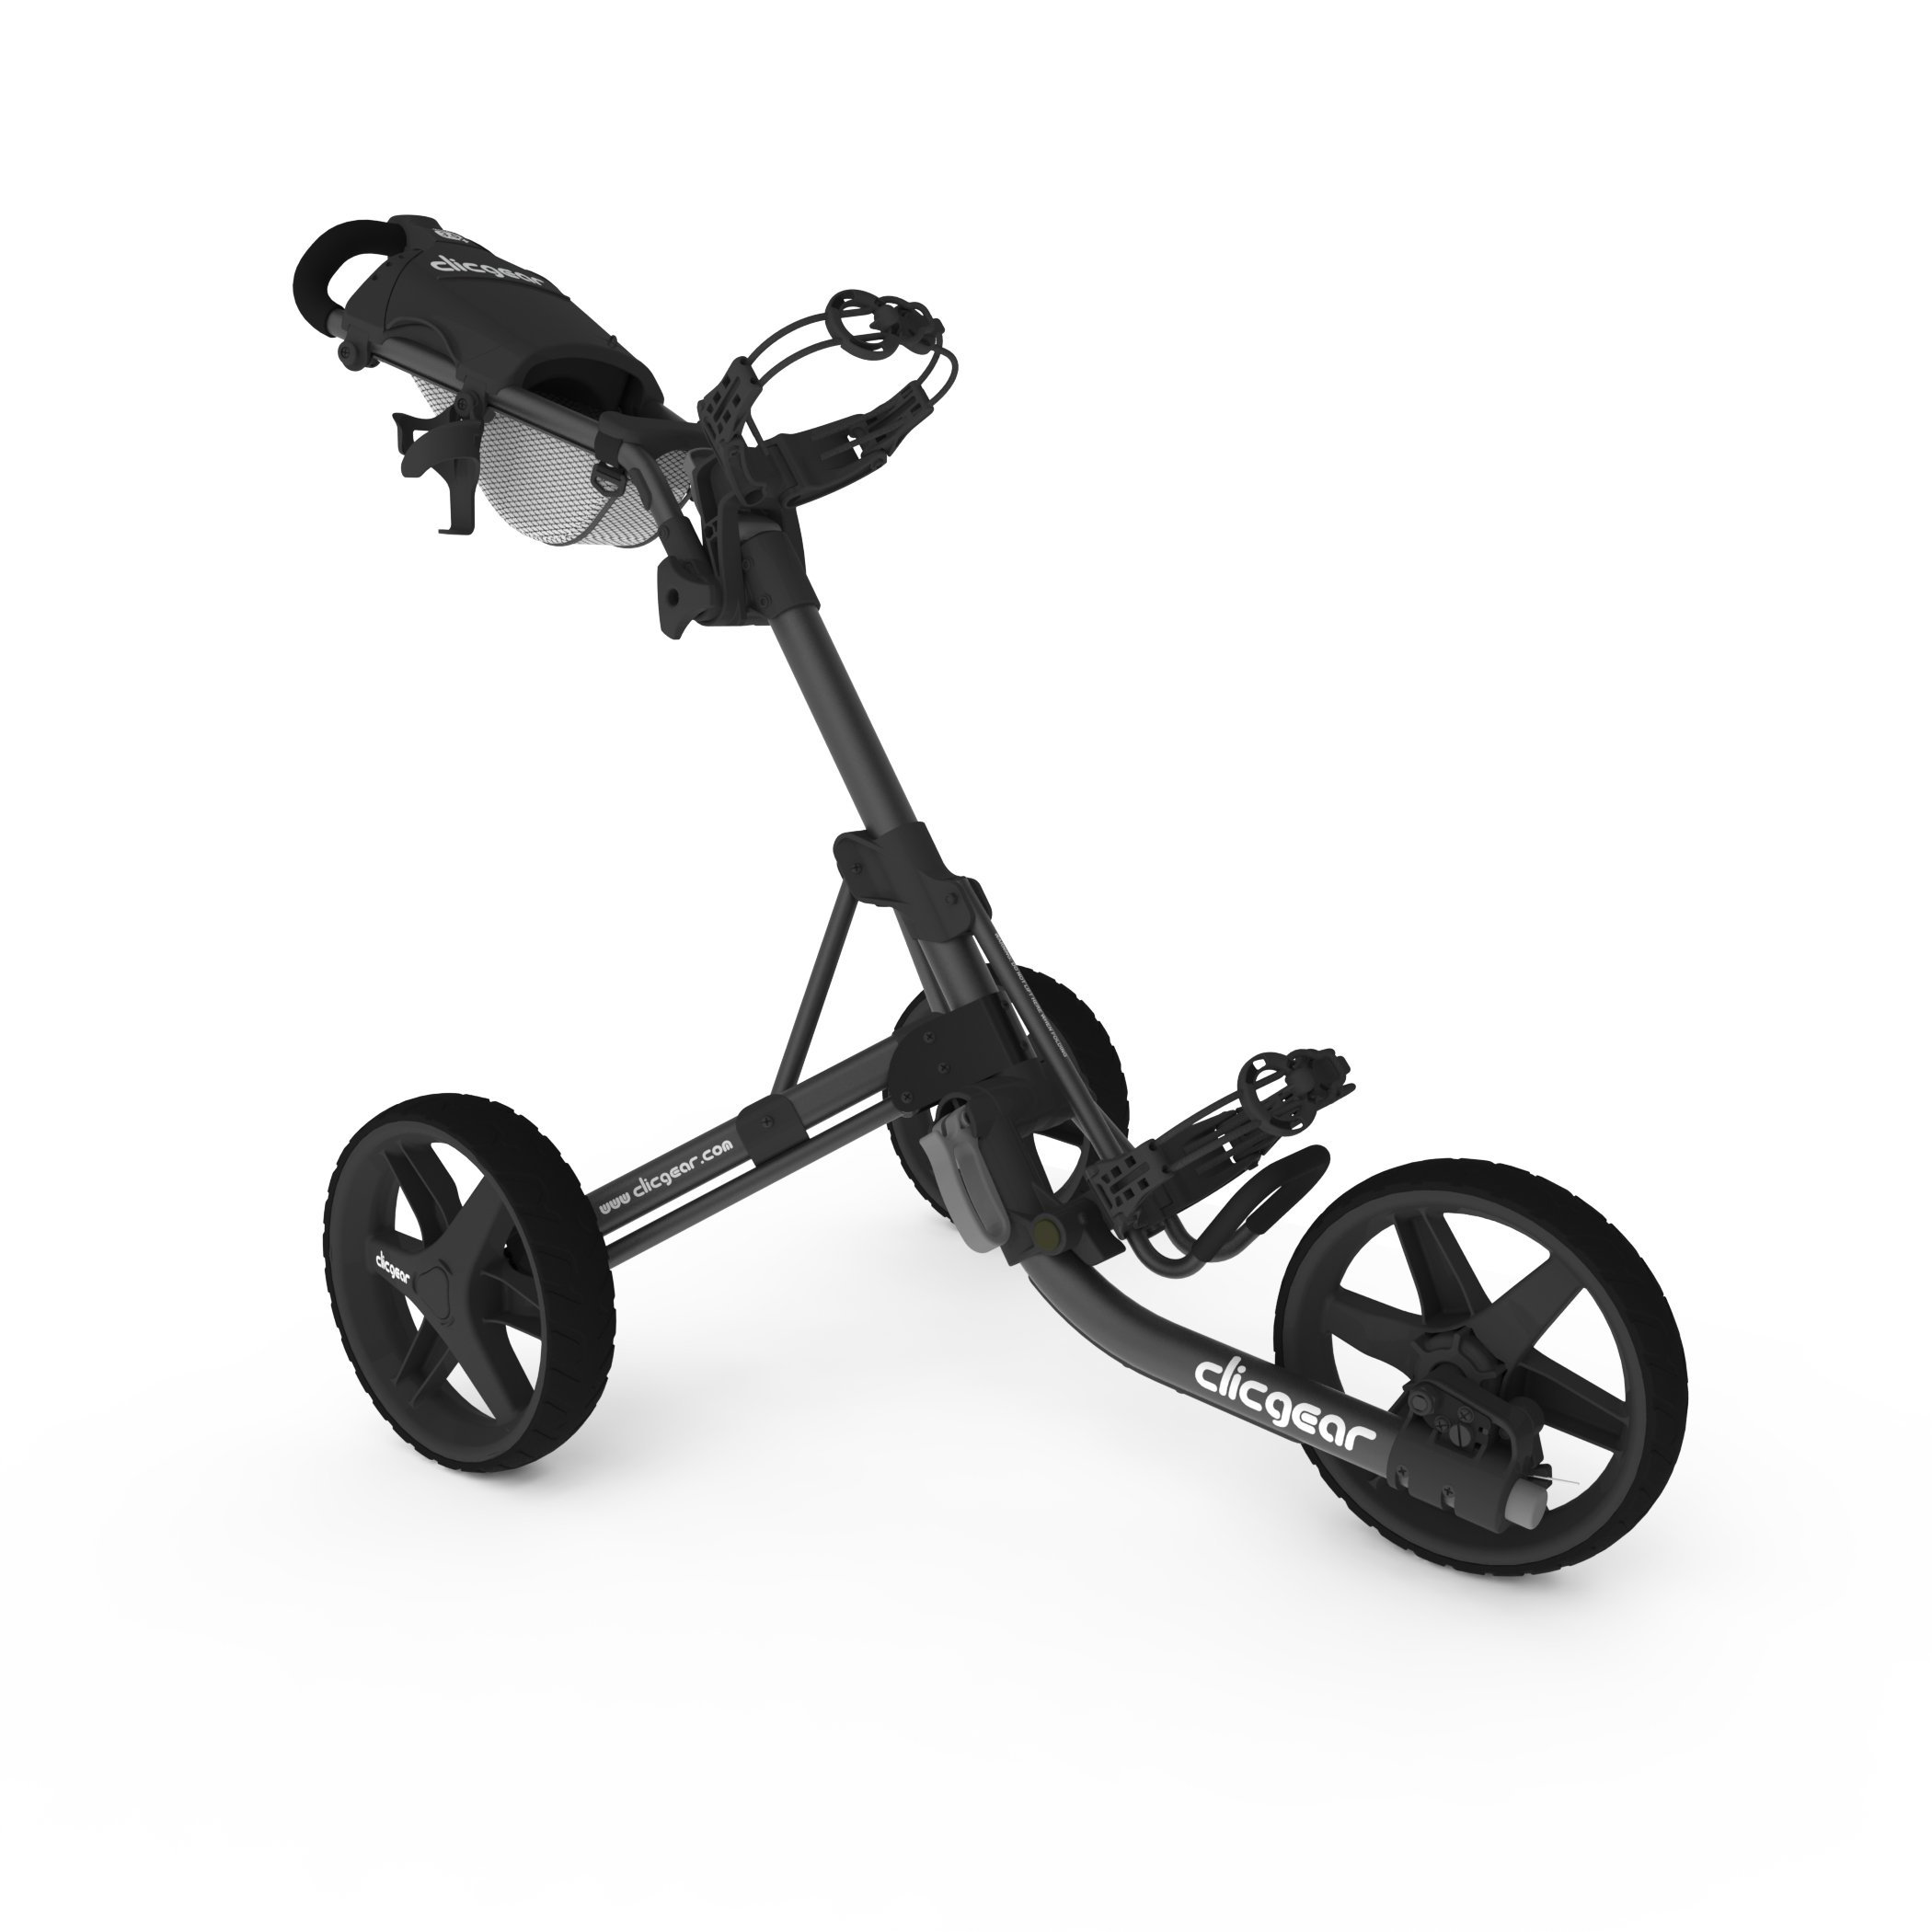 Clicgear Model 3.5+ | 3-Wheel Golf Push Cart  (Charcoal/Black) by Clicgear